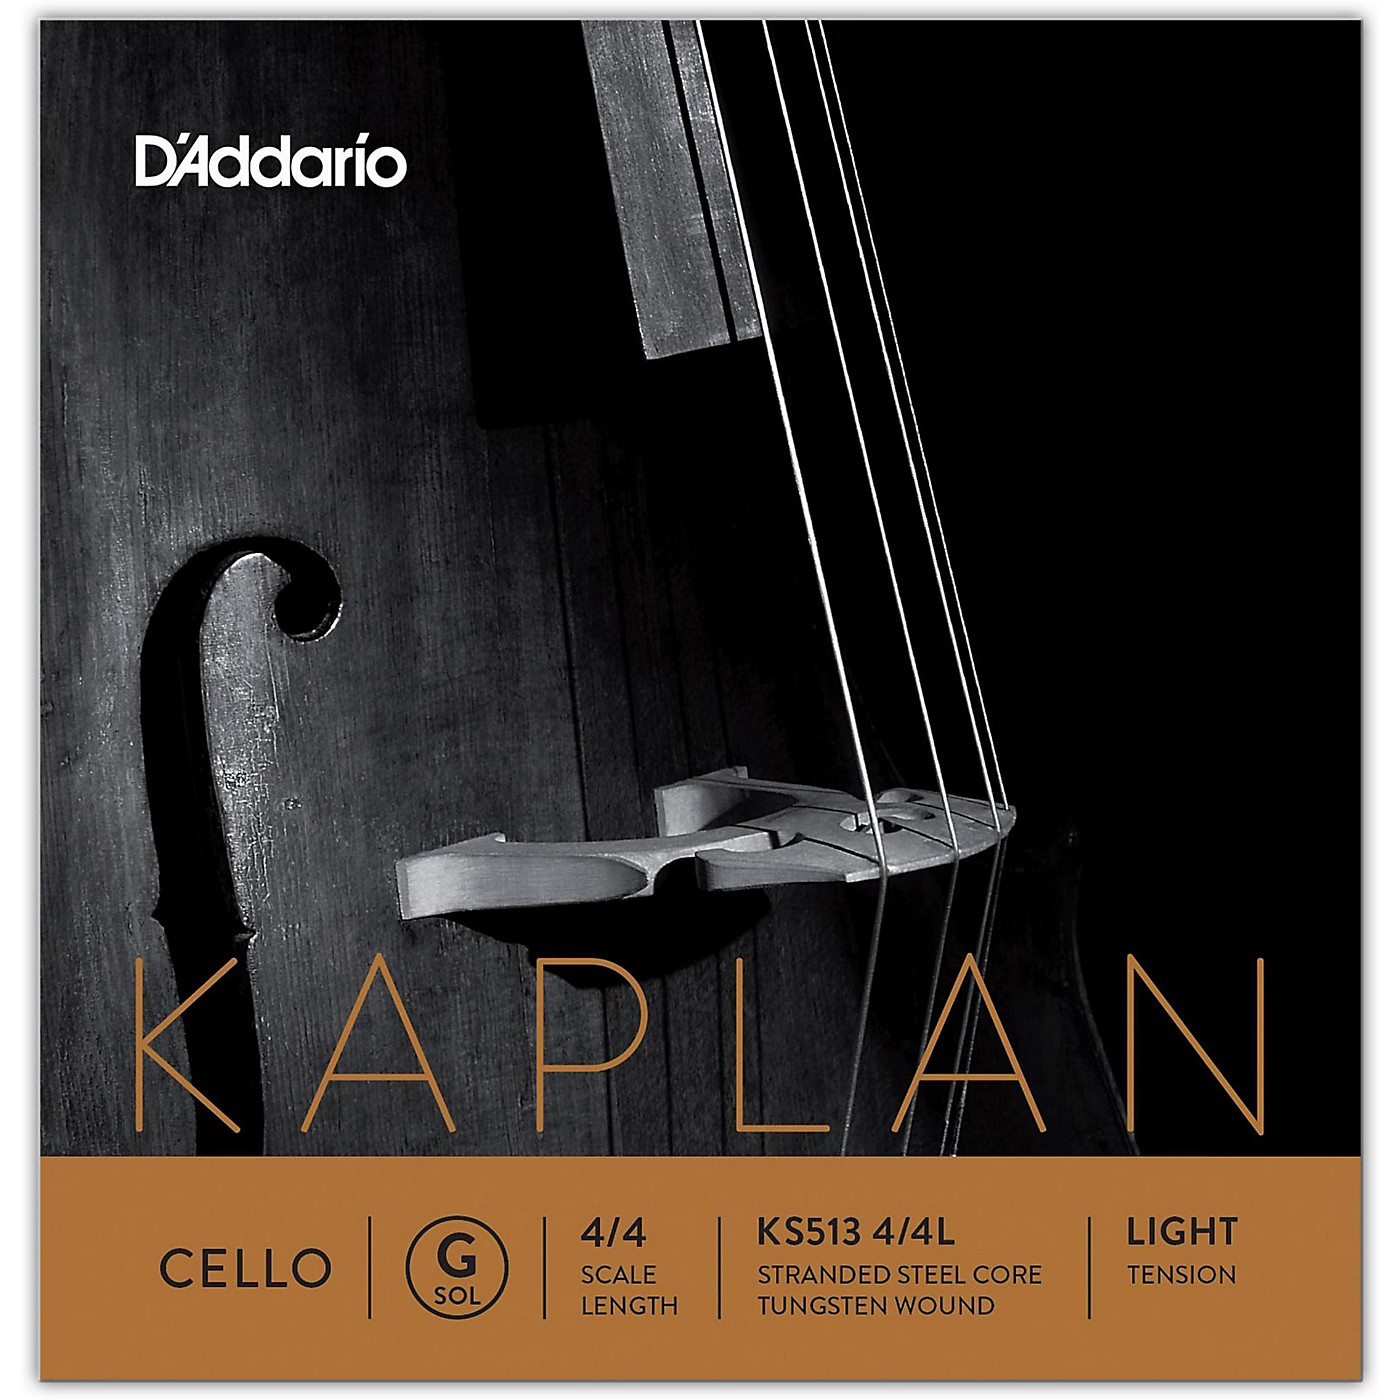 D'Addario Kaplan Series Cello G String thumbnail